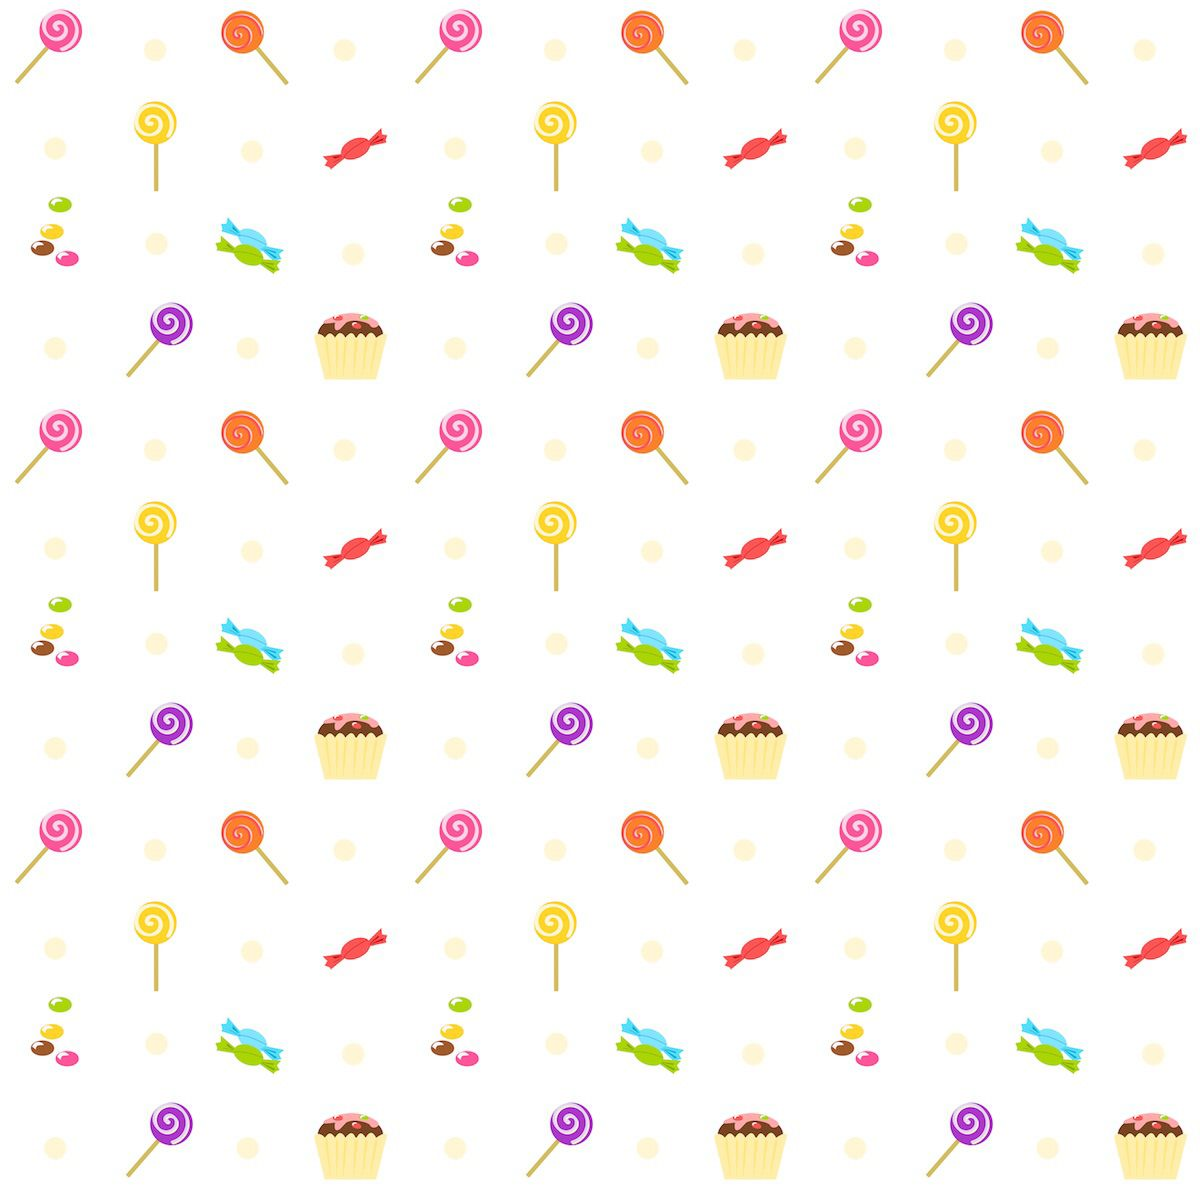 Scrapbook paper and stickers - Paper Sweets Create Dozens Of Paper Sweets With Paint Chips Beads And Markers Free Printable Planner Stickers And Scrapbooking Papers